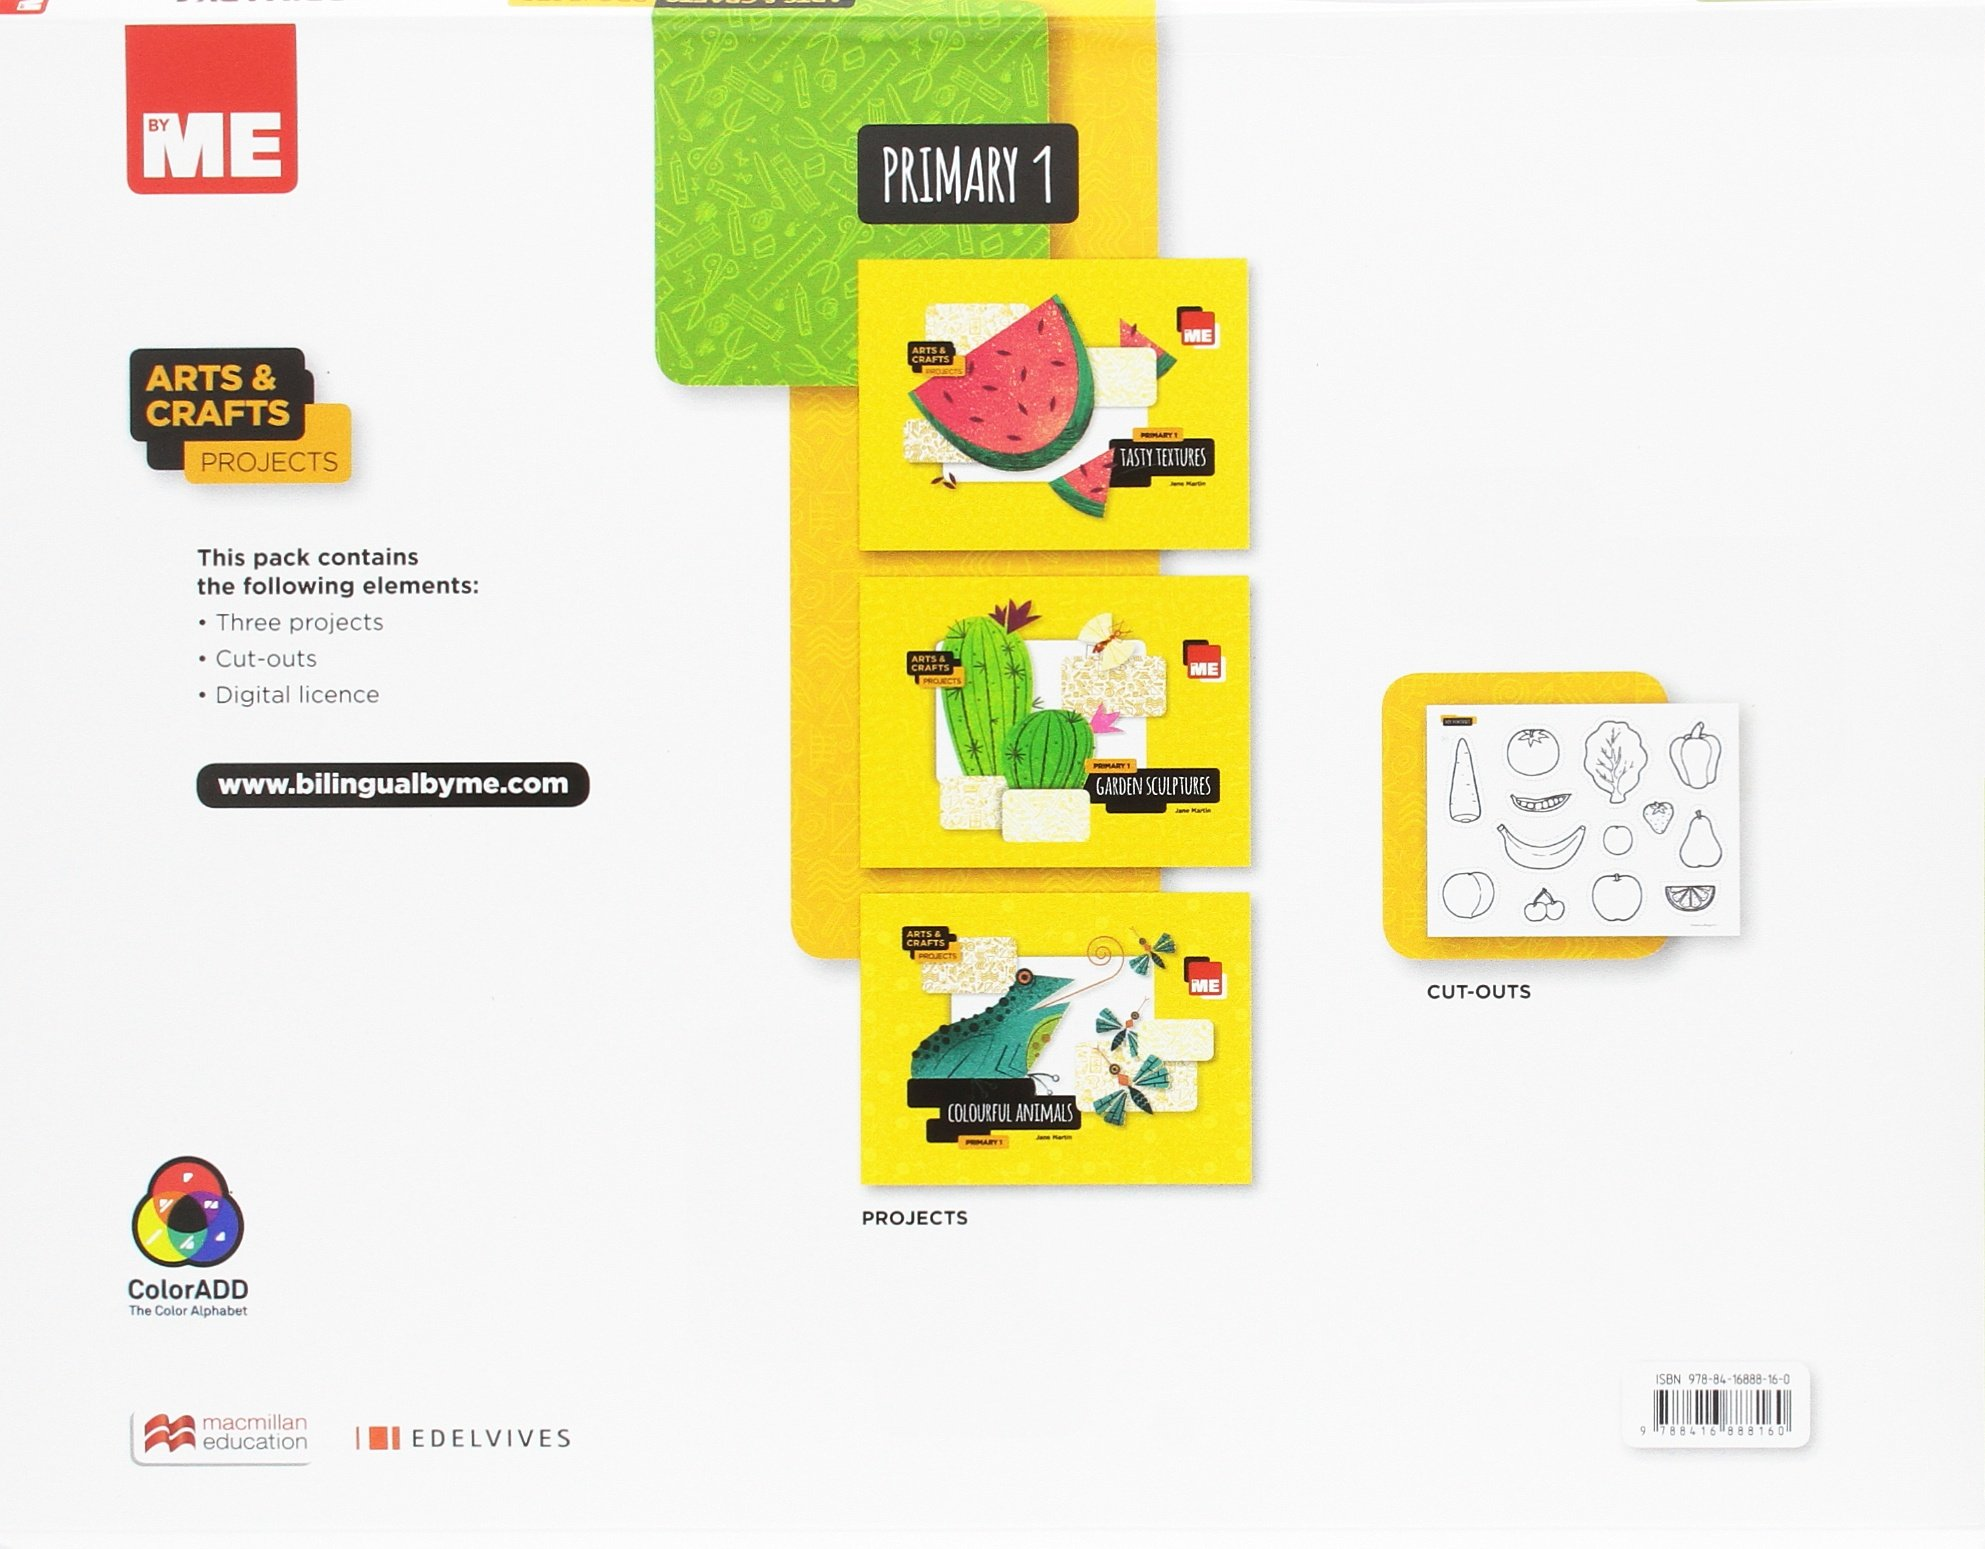 Arts and Crafts Projects 1º Green Pack Arts&Crafts Projects - 9788416888160: Amazon.es: Martin, Jane: Libros en idiomas extranjeros